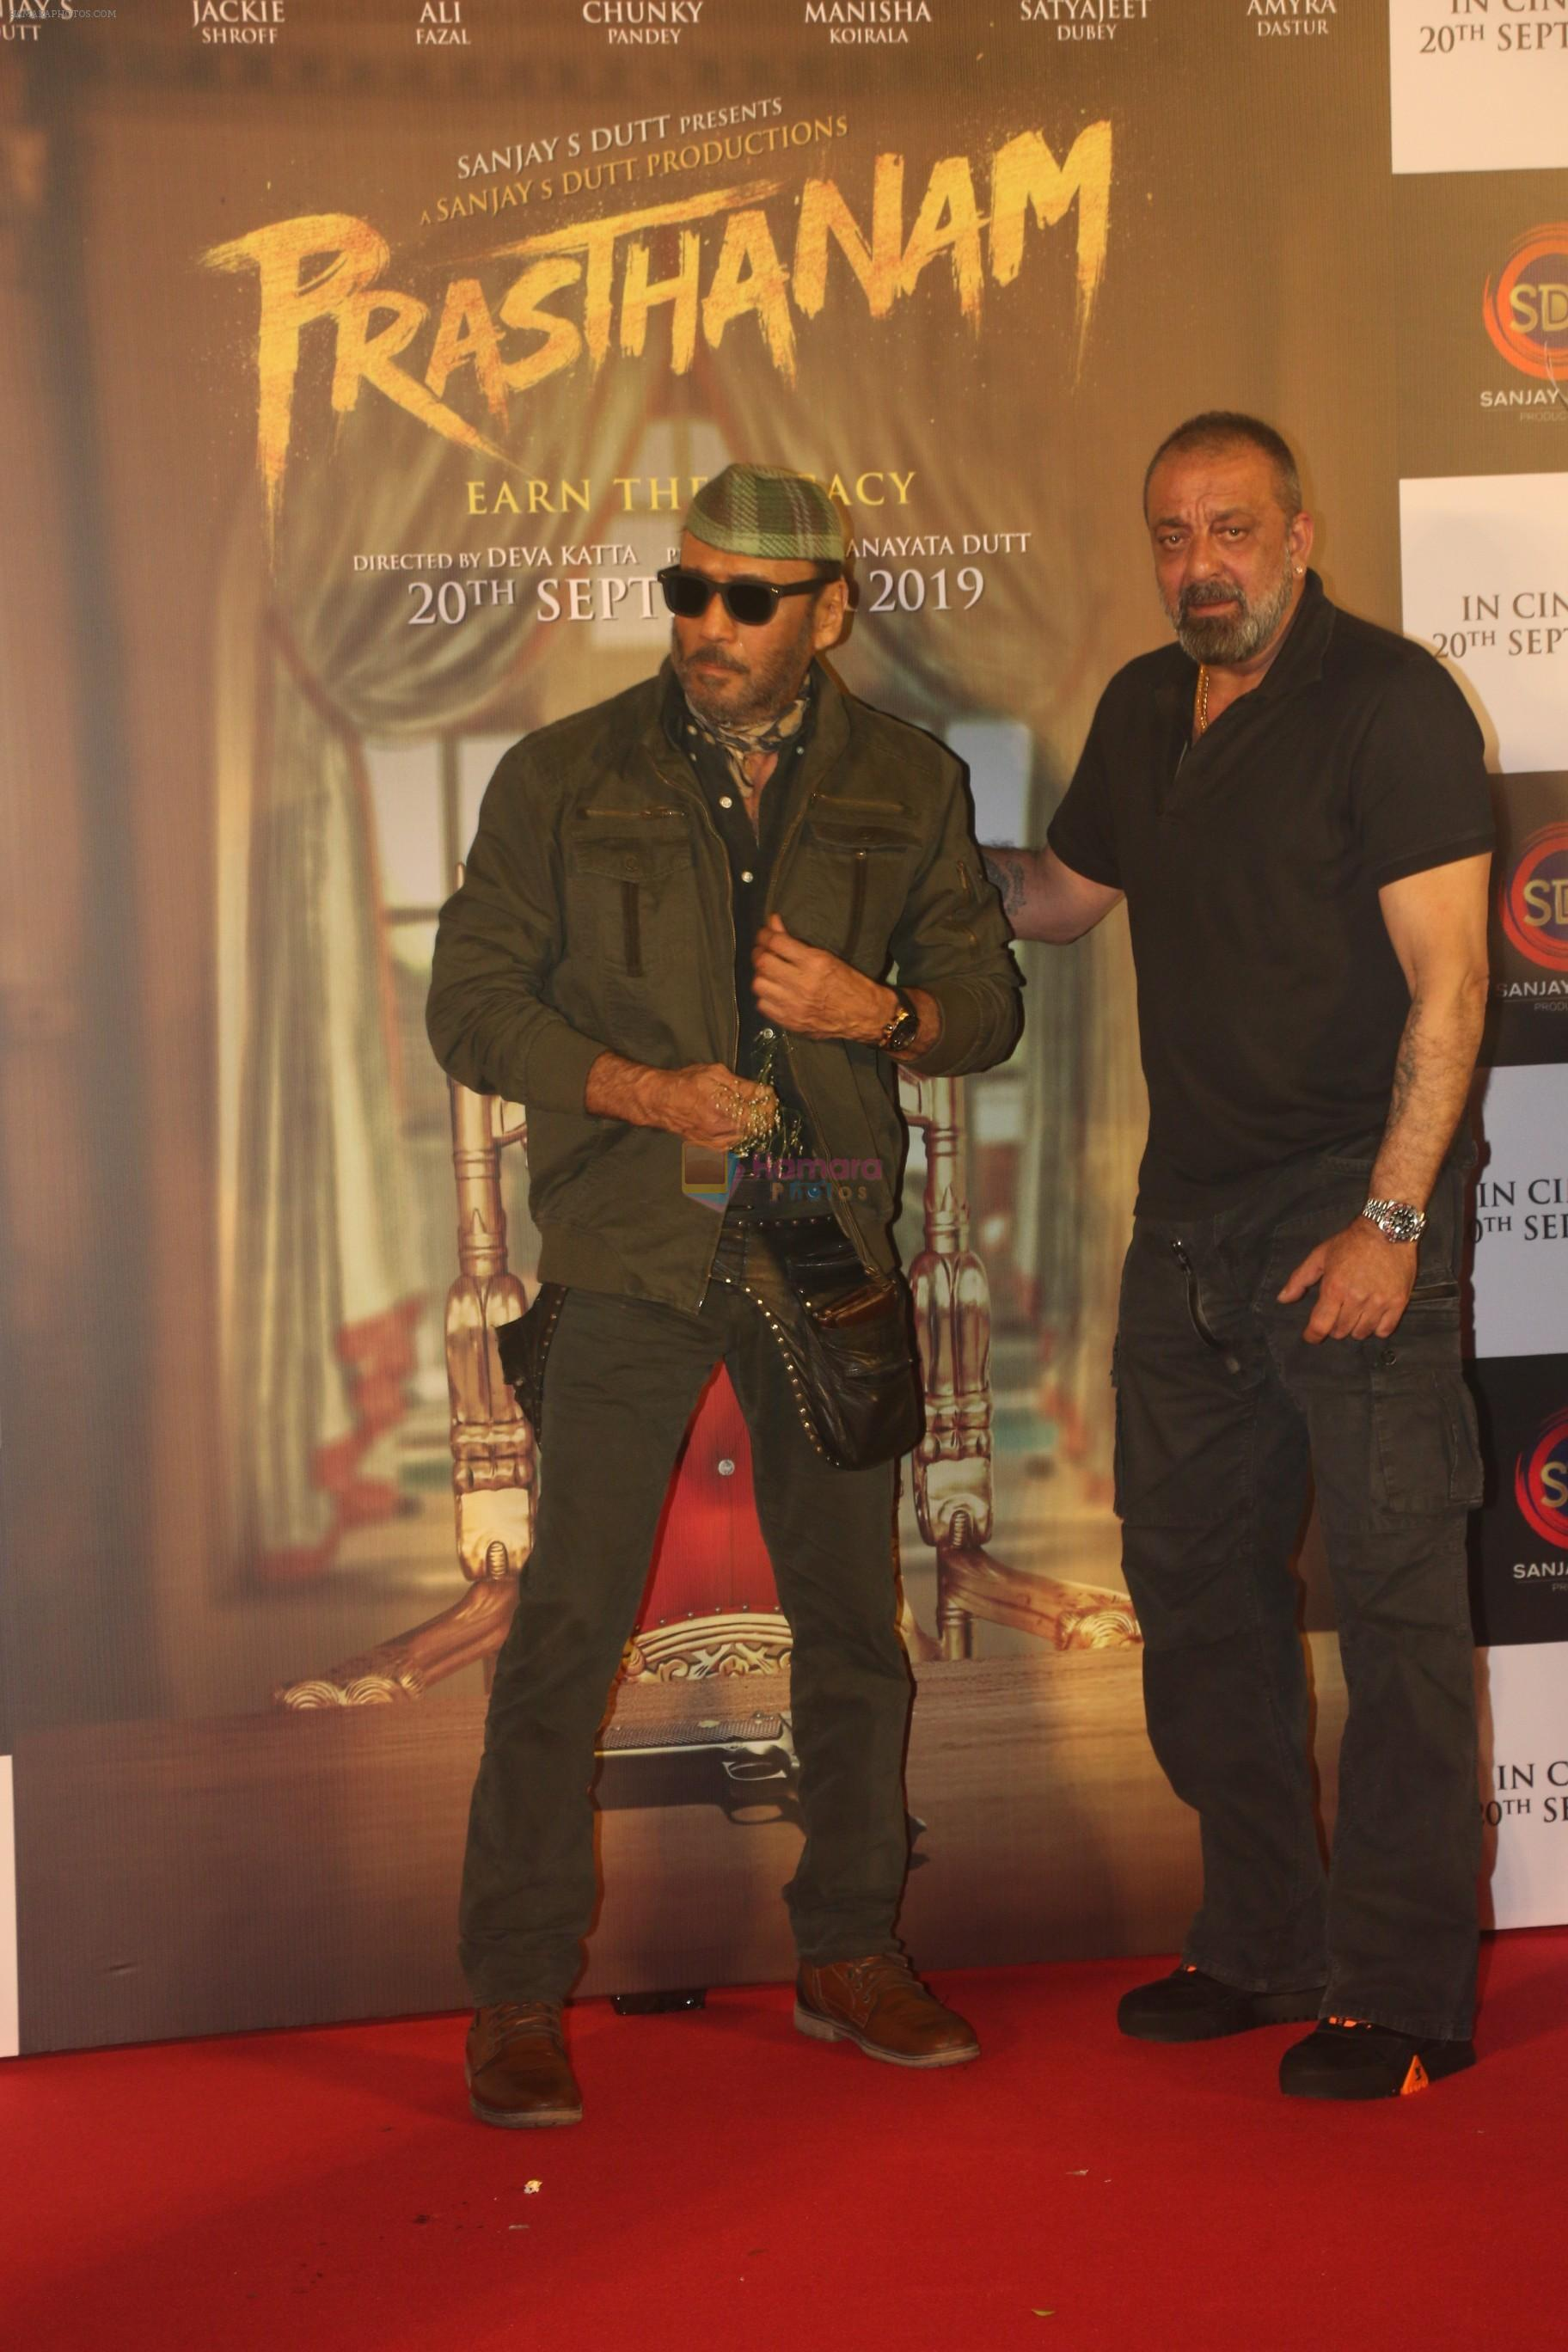 Jackie Shroff .Sanjay Dutt at the Trailer launch of Sanjay ...